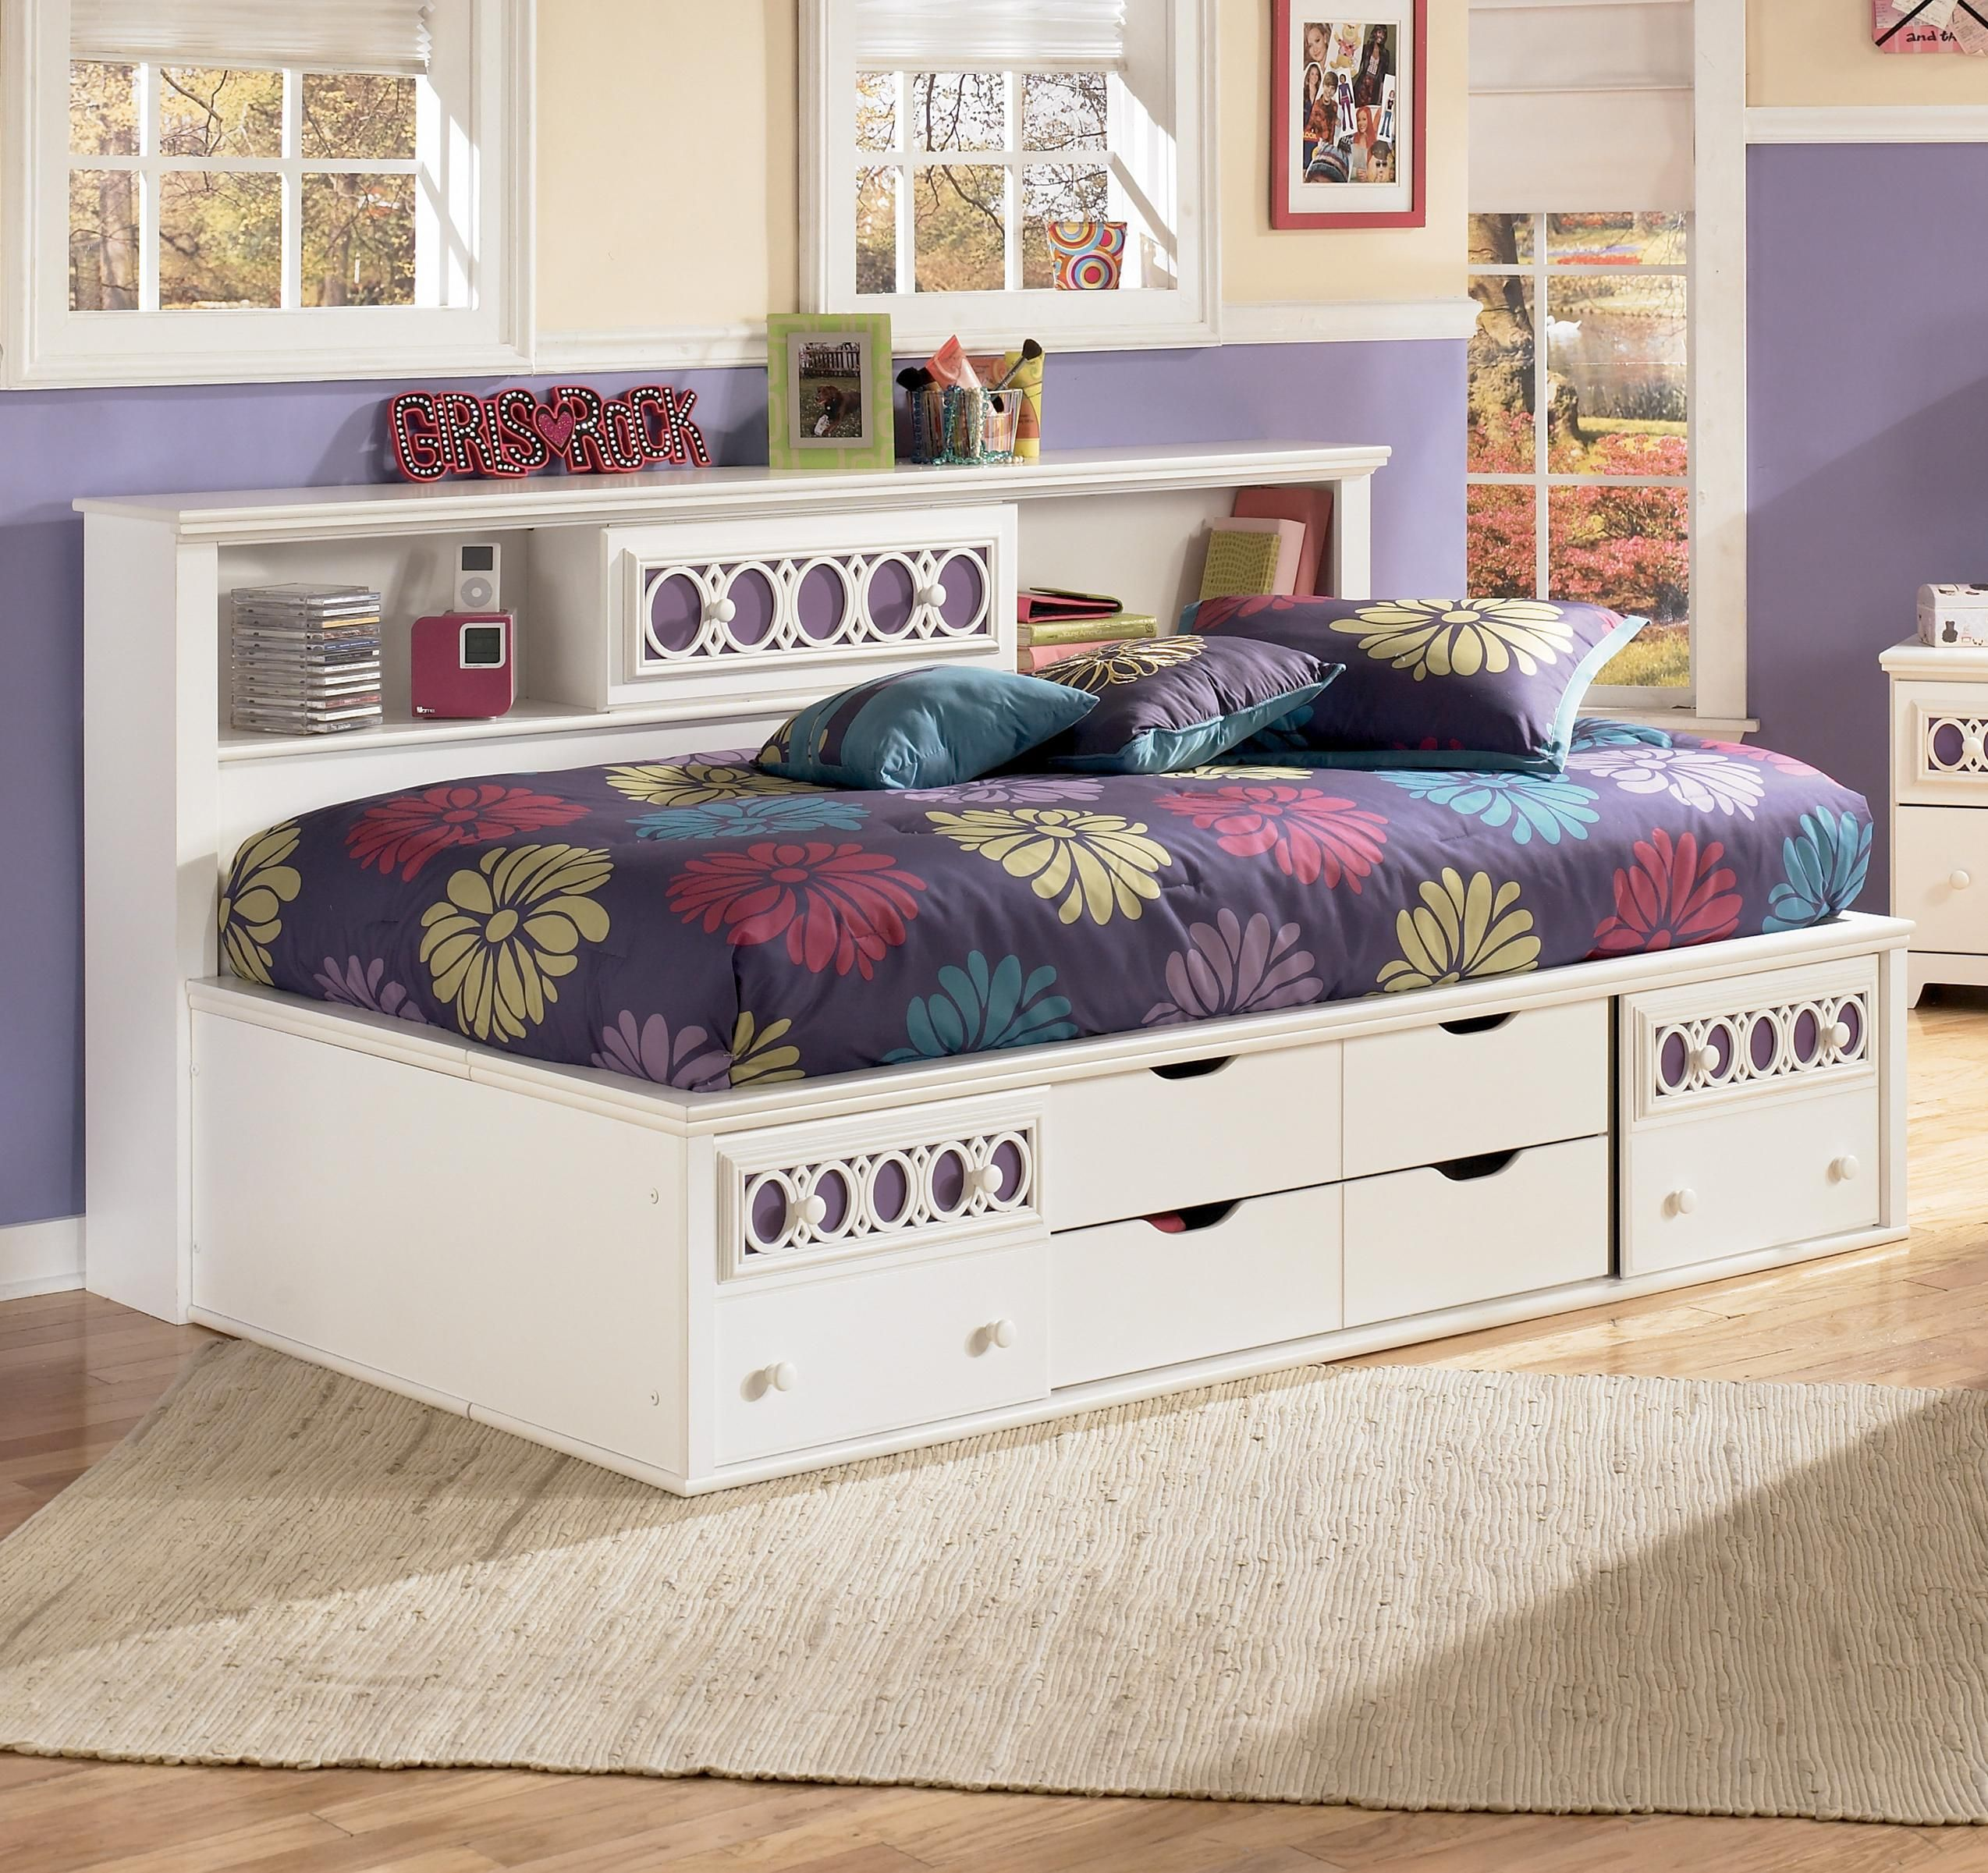 Zayley Twin Bedside Bookcase Daybed With Customizable Color Panels